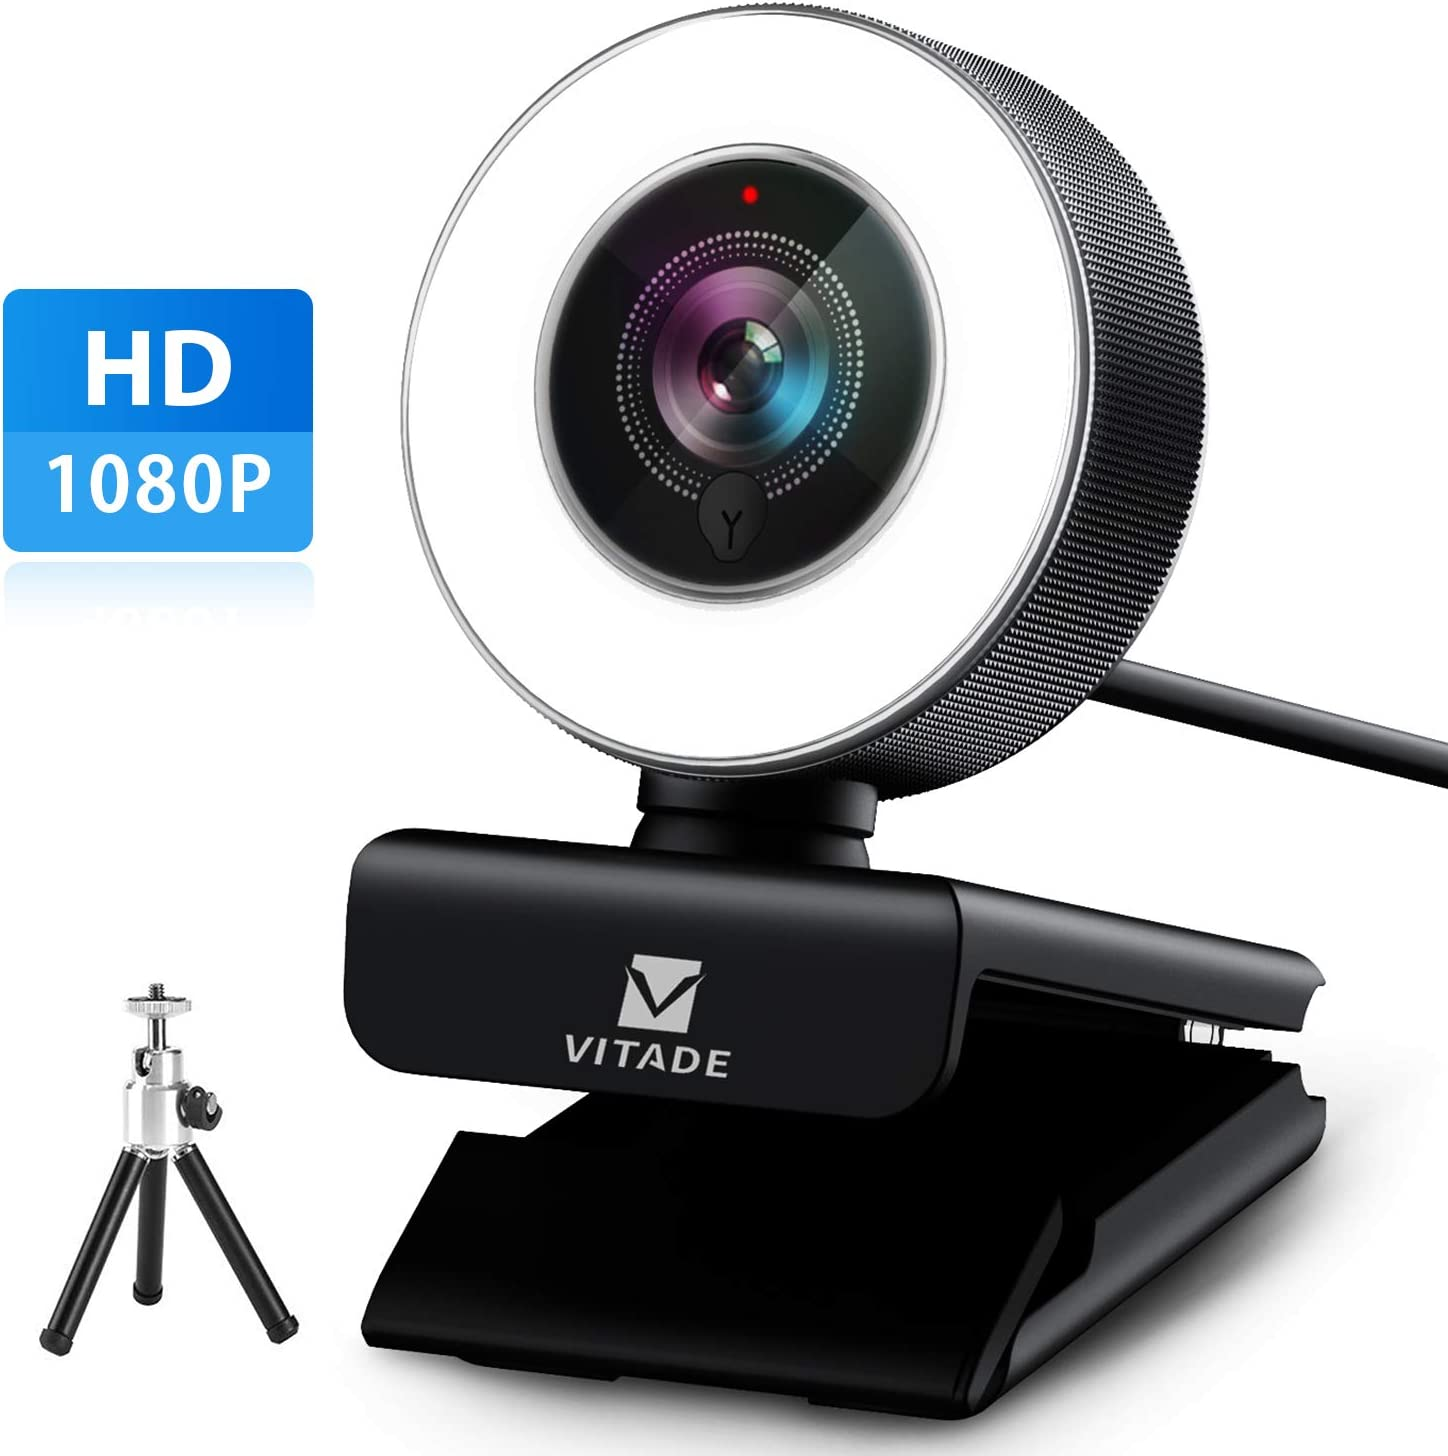 Webcam 1080P with Microphone & Ring Light, Vitade 960A Pro USB HD PC Web Camera Video Cam for Streaming Gaming Conferencing Mac Windows Desktop Computer Xbox Skype OBS Twitch Youtube (Tripod Included)